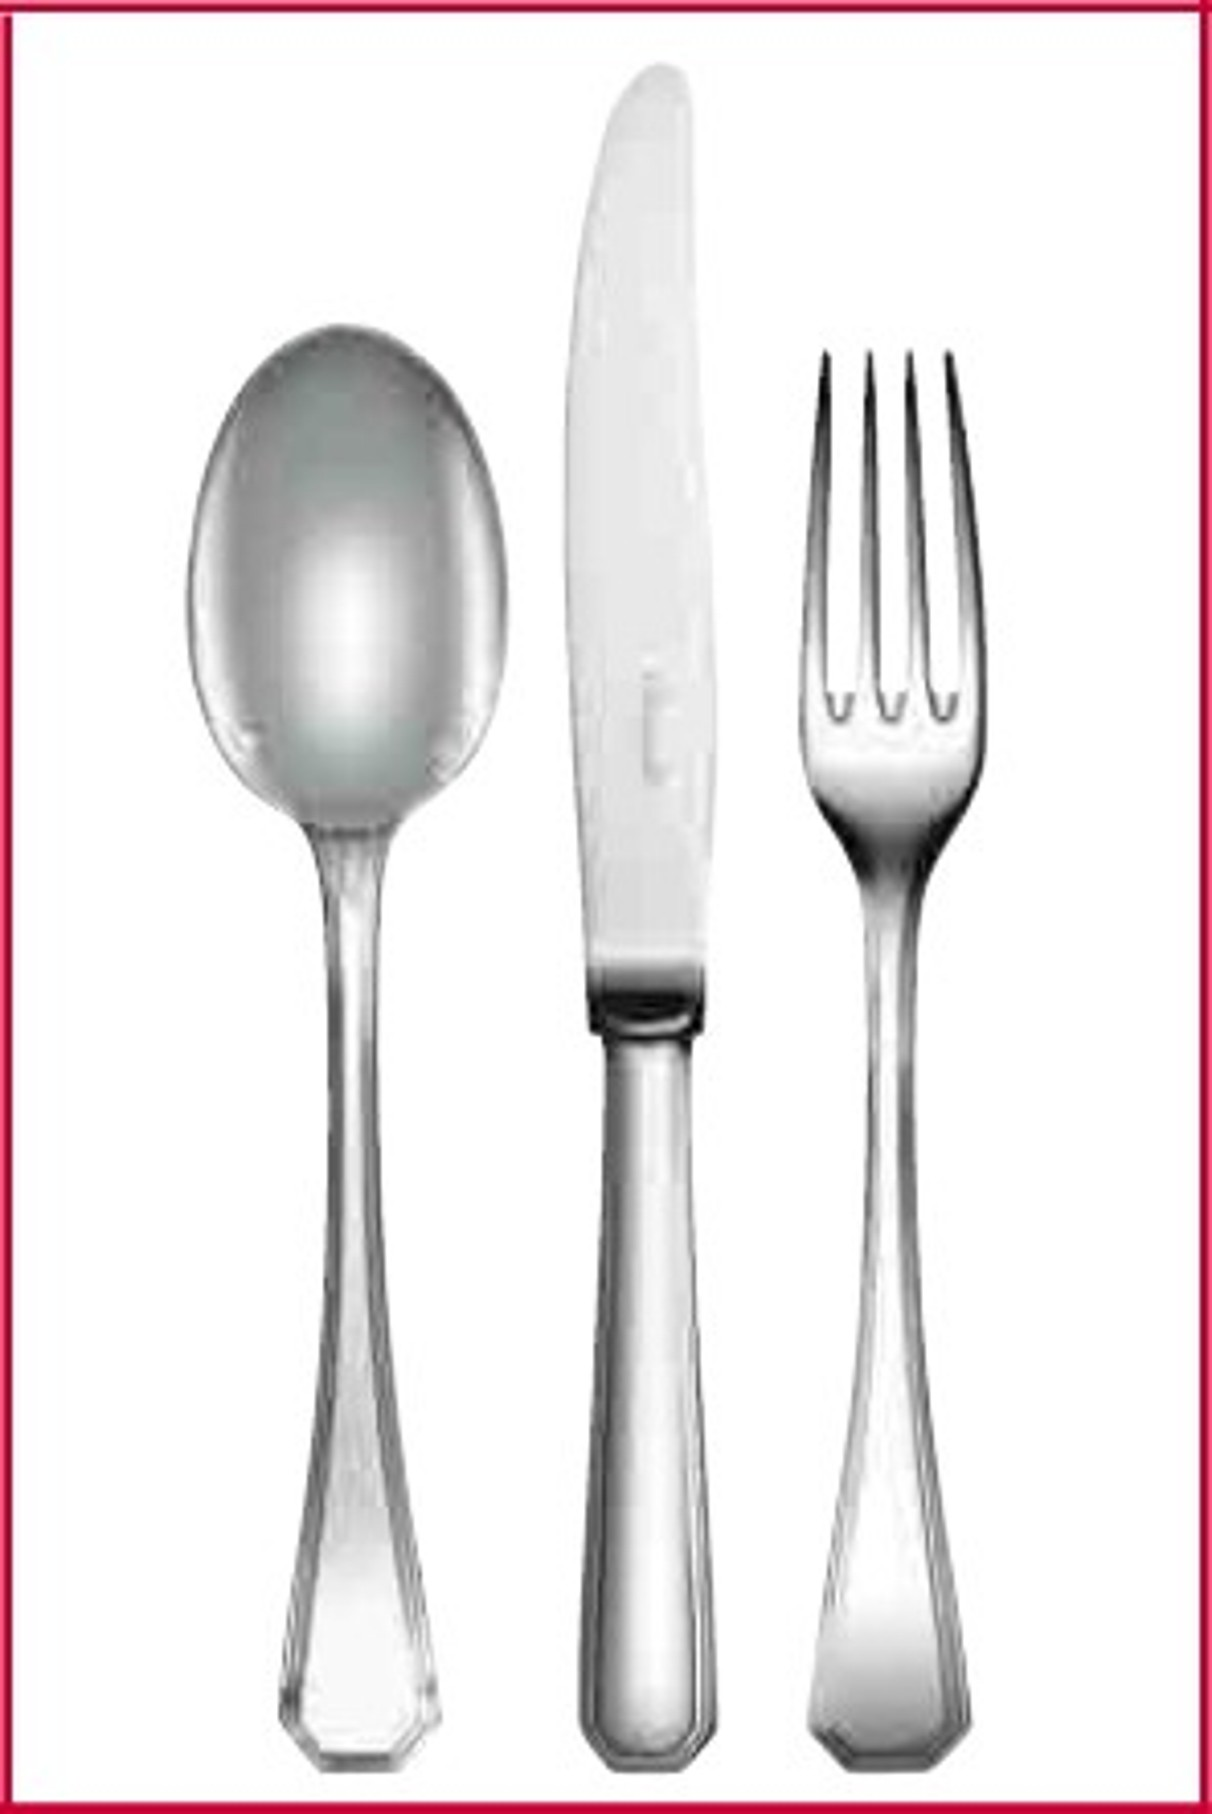 Christofle Flatware | Grant Madison and Associates